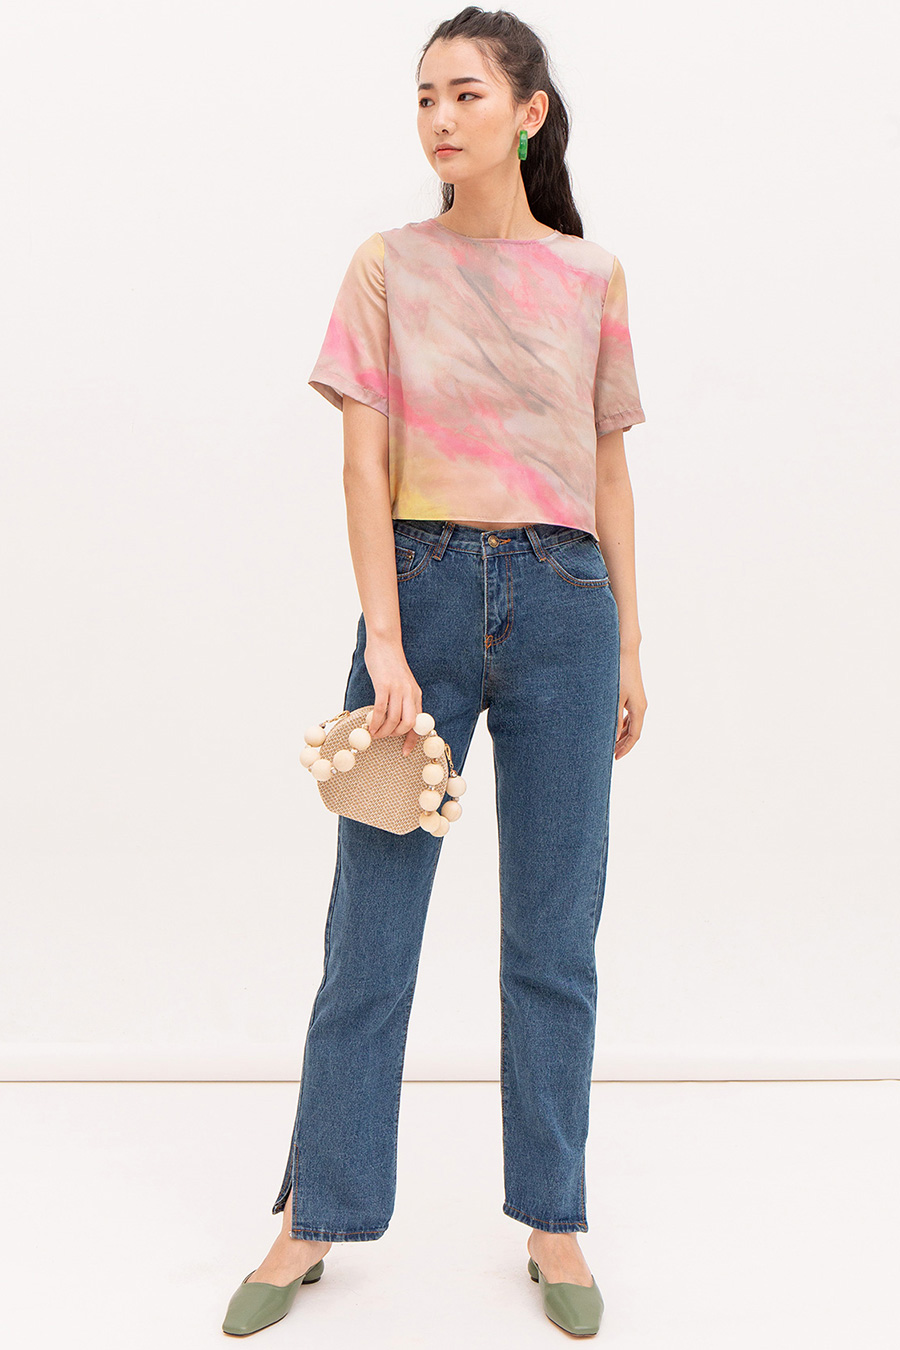 *SALE* LAURENT TOP - TIEDYE